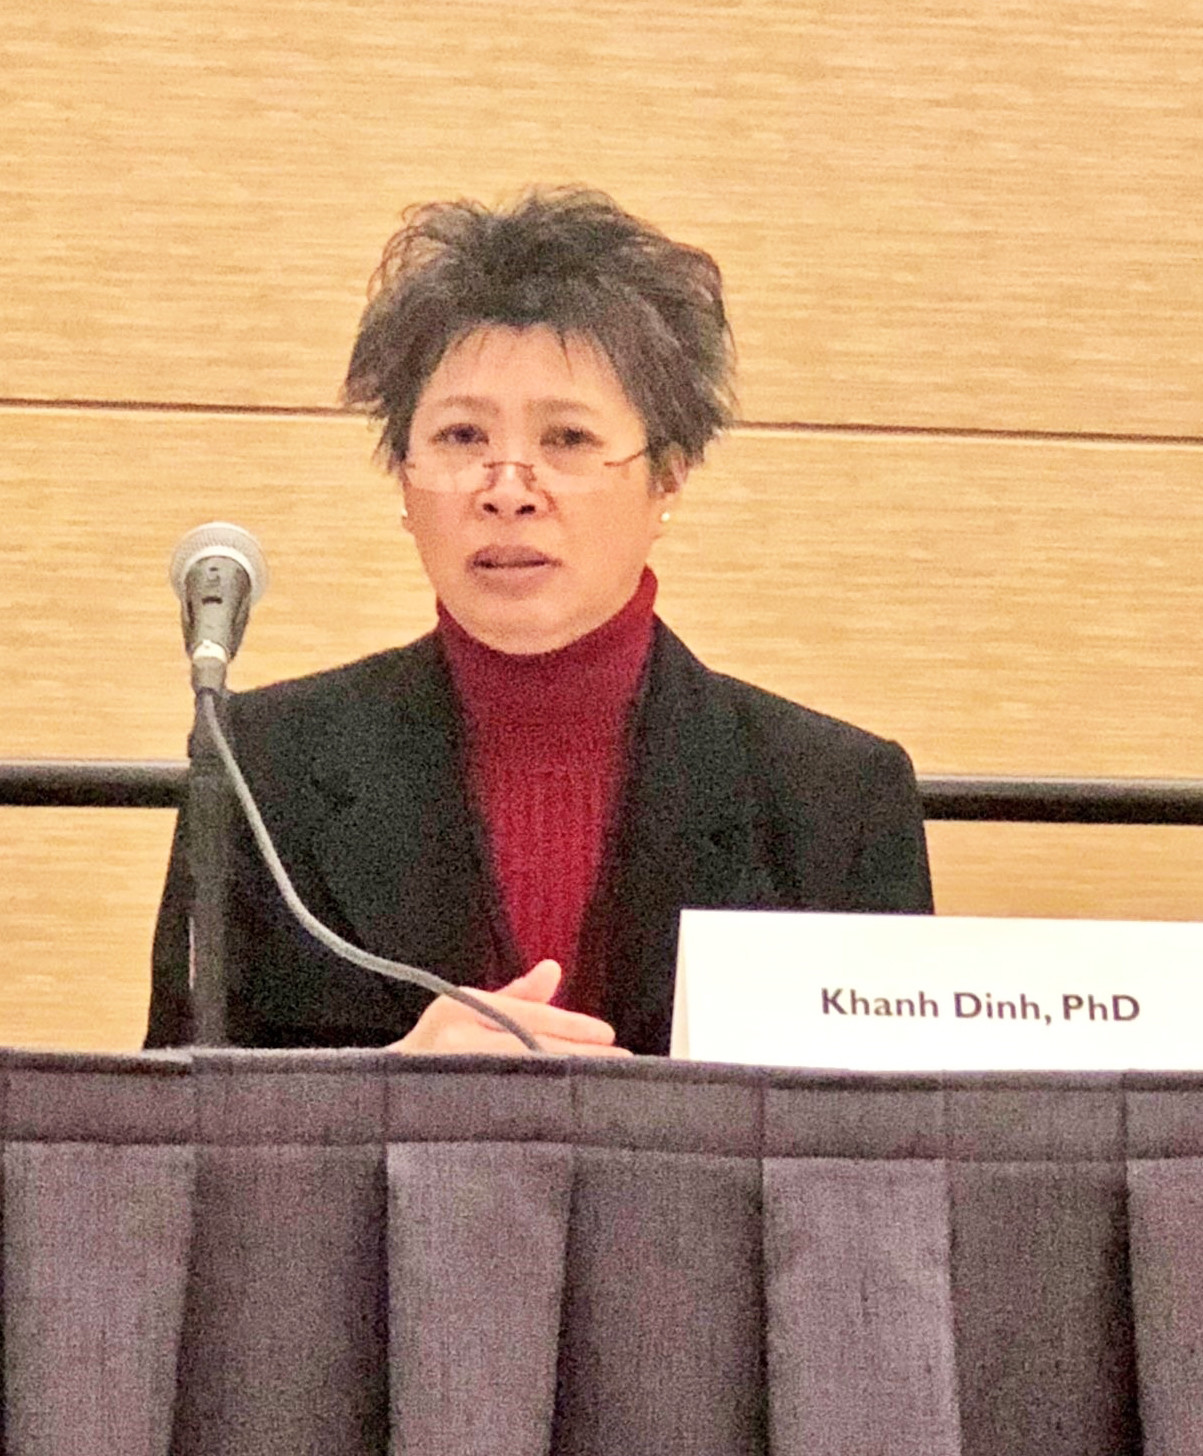 """Undocumented immigrants are living in a war zone, not knowing where the landmines may be,"" said Khanh Dinh, Ph.D., professor of Psychology at the University of Massachusetts Lowell. 